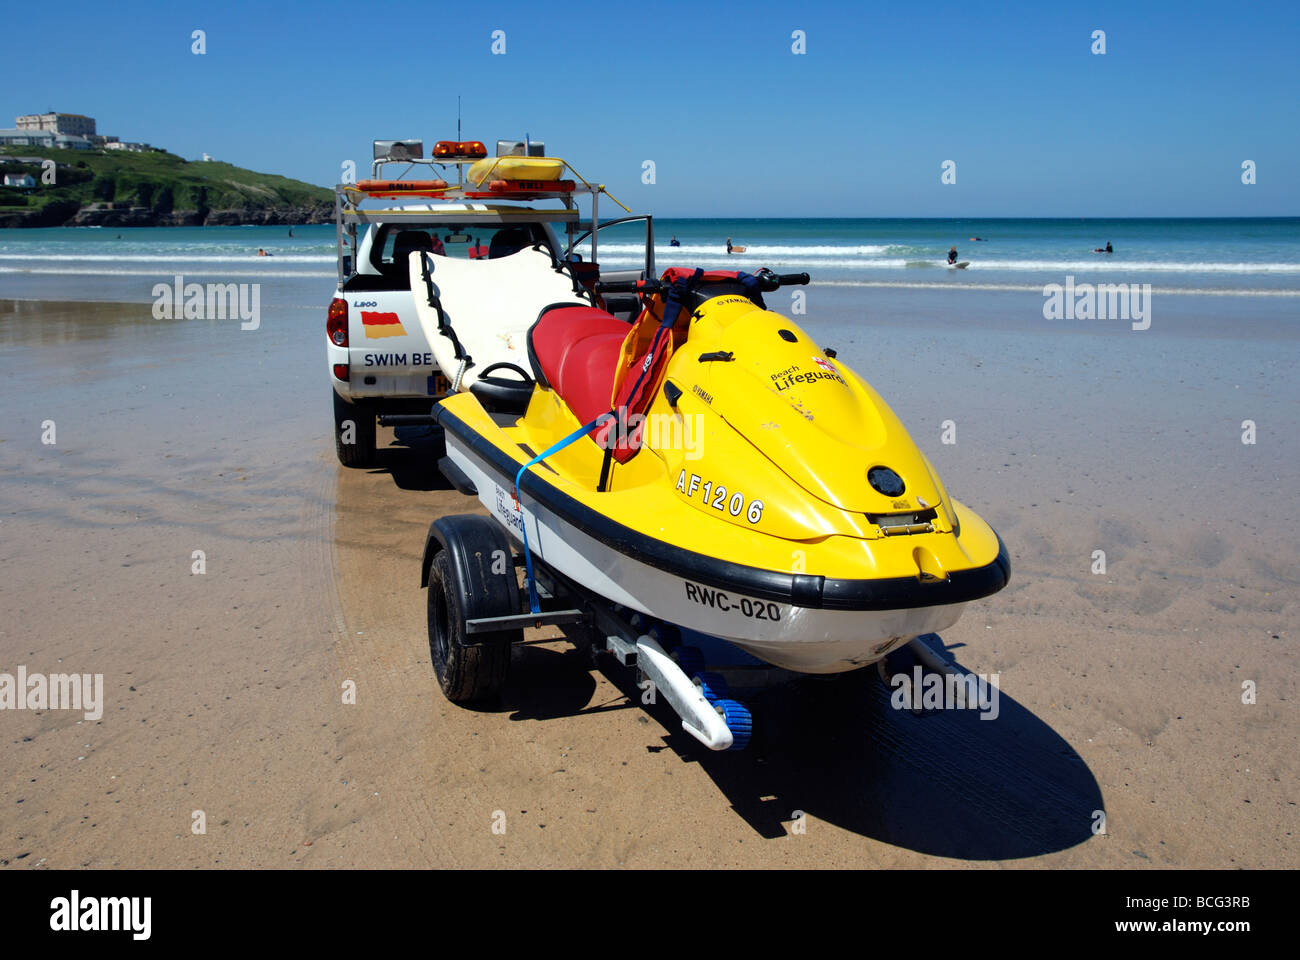 one of the jet ski sea scooters that the RNLI lifeguards use for rescues at newquay in cornwall uk - Stock Image